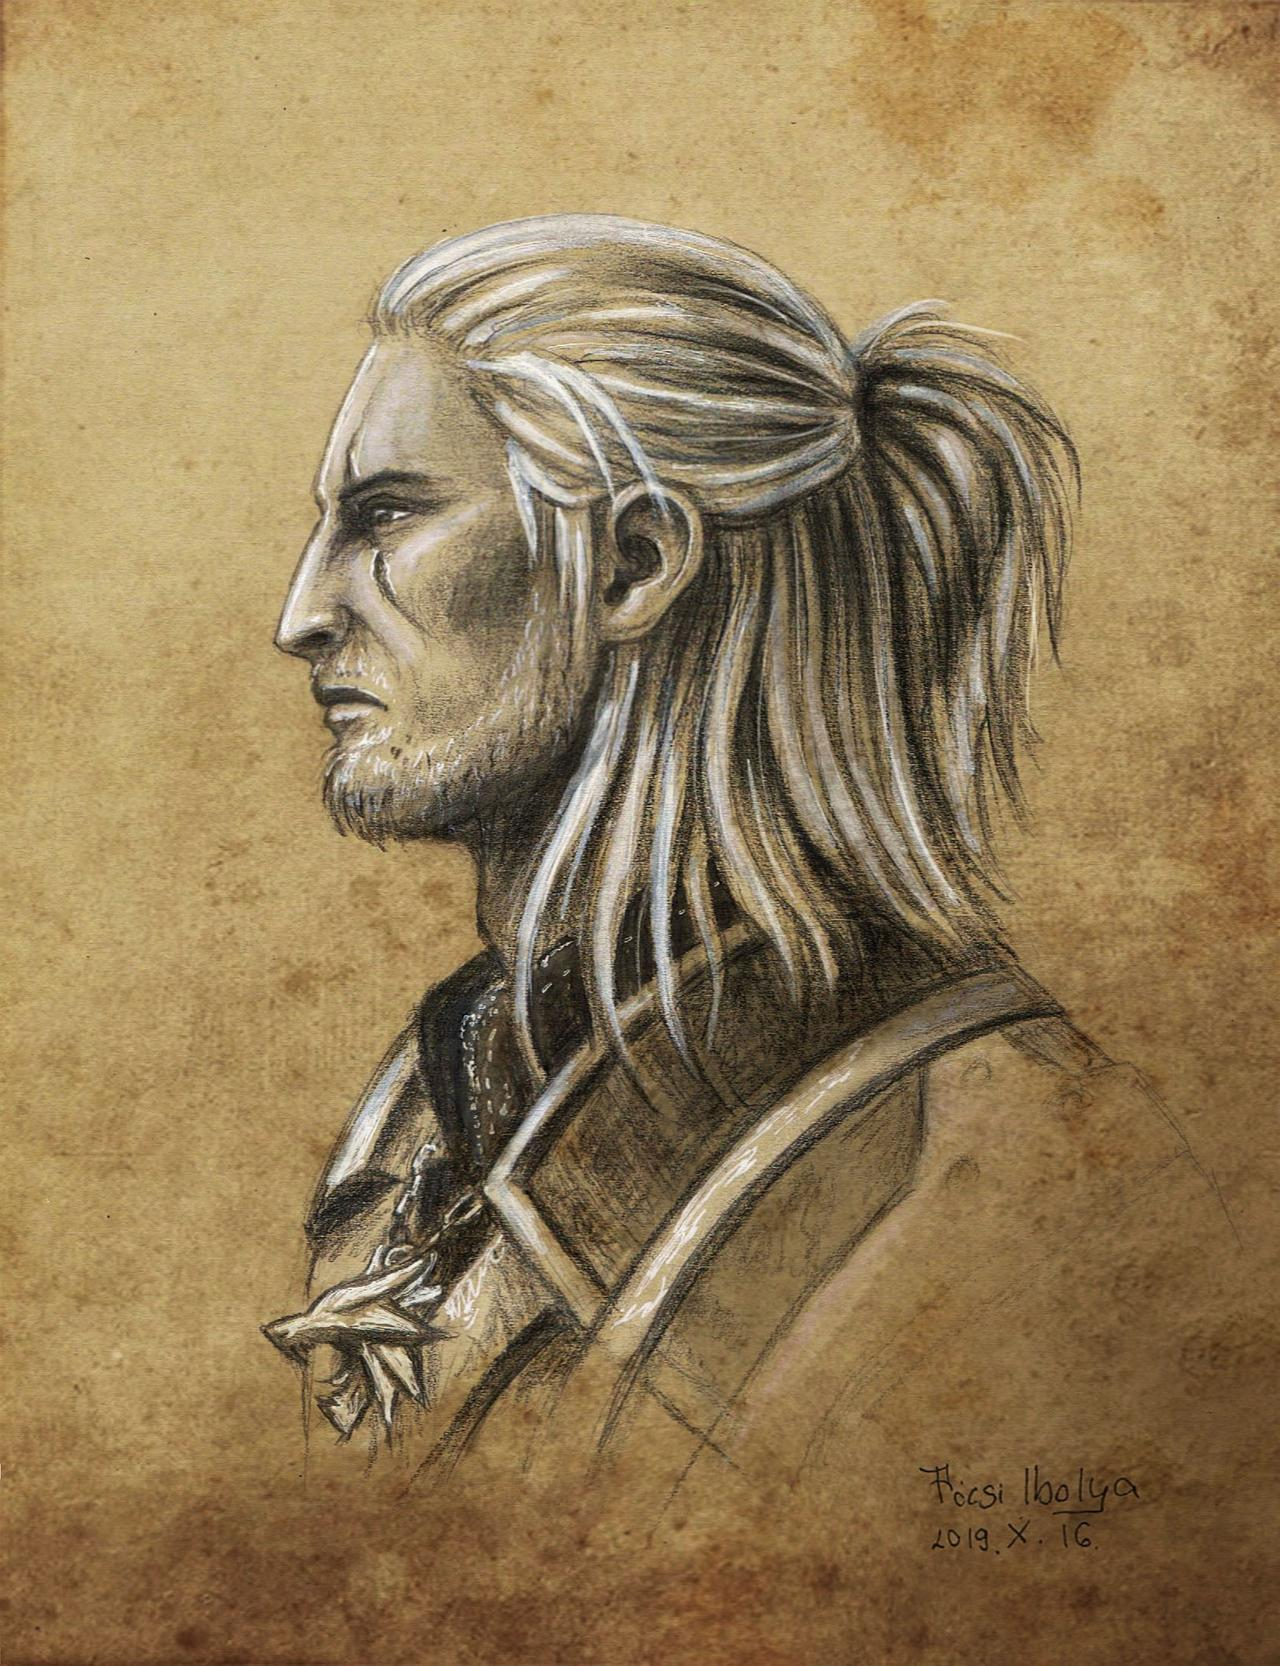 geralt_of_rivia_by_violet93_ddihd0y-fullview.jpg - Witcher 3: Wild Hunt, the